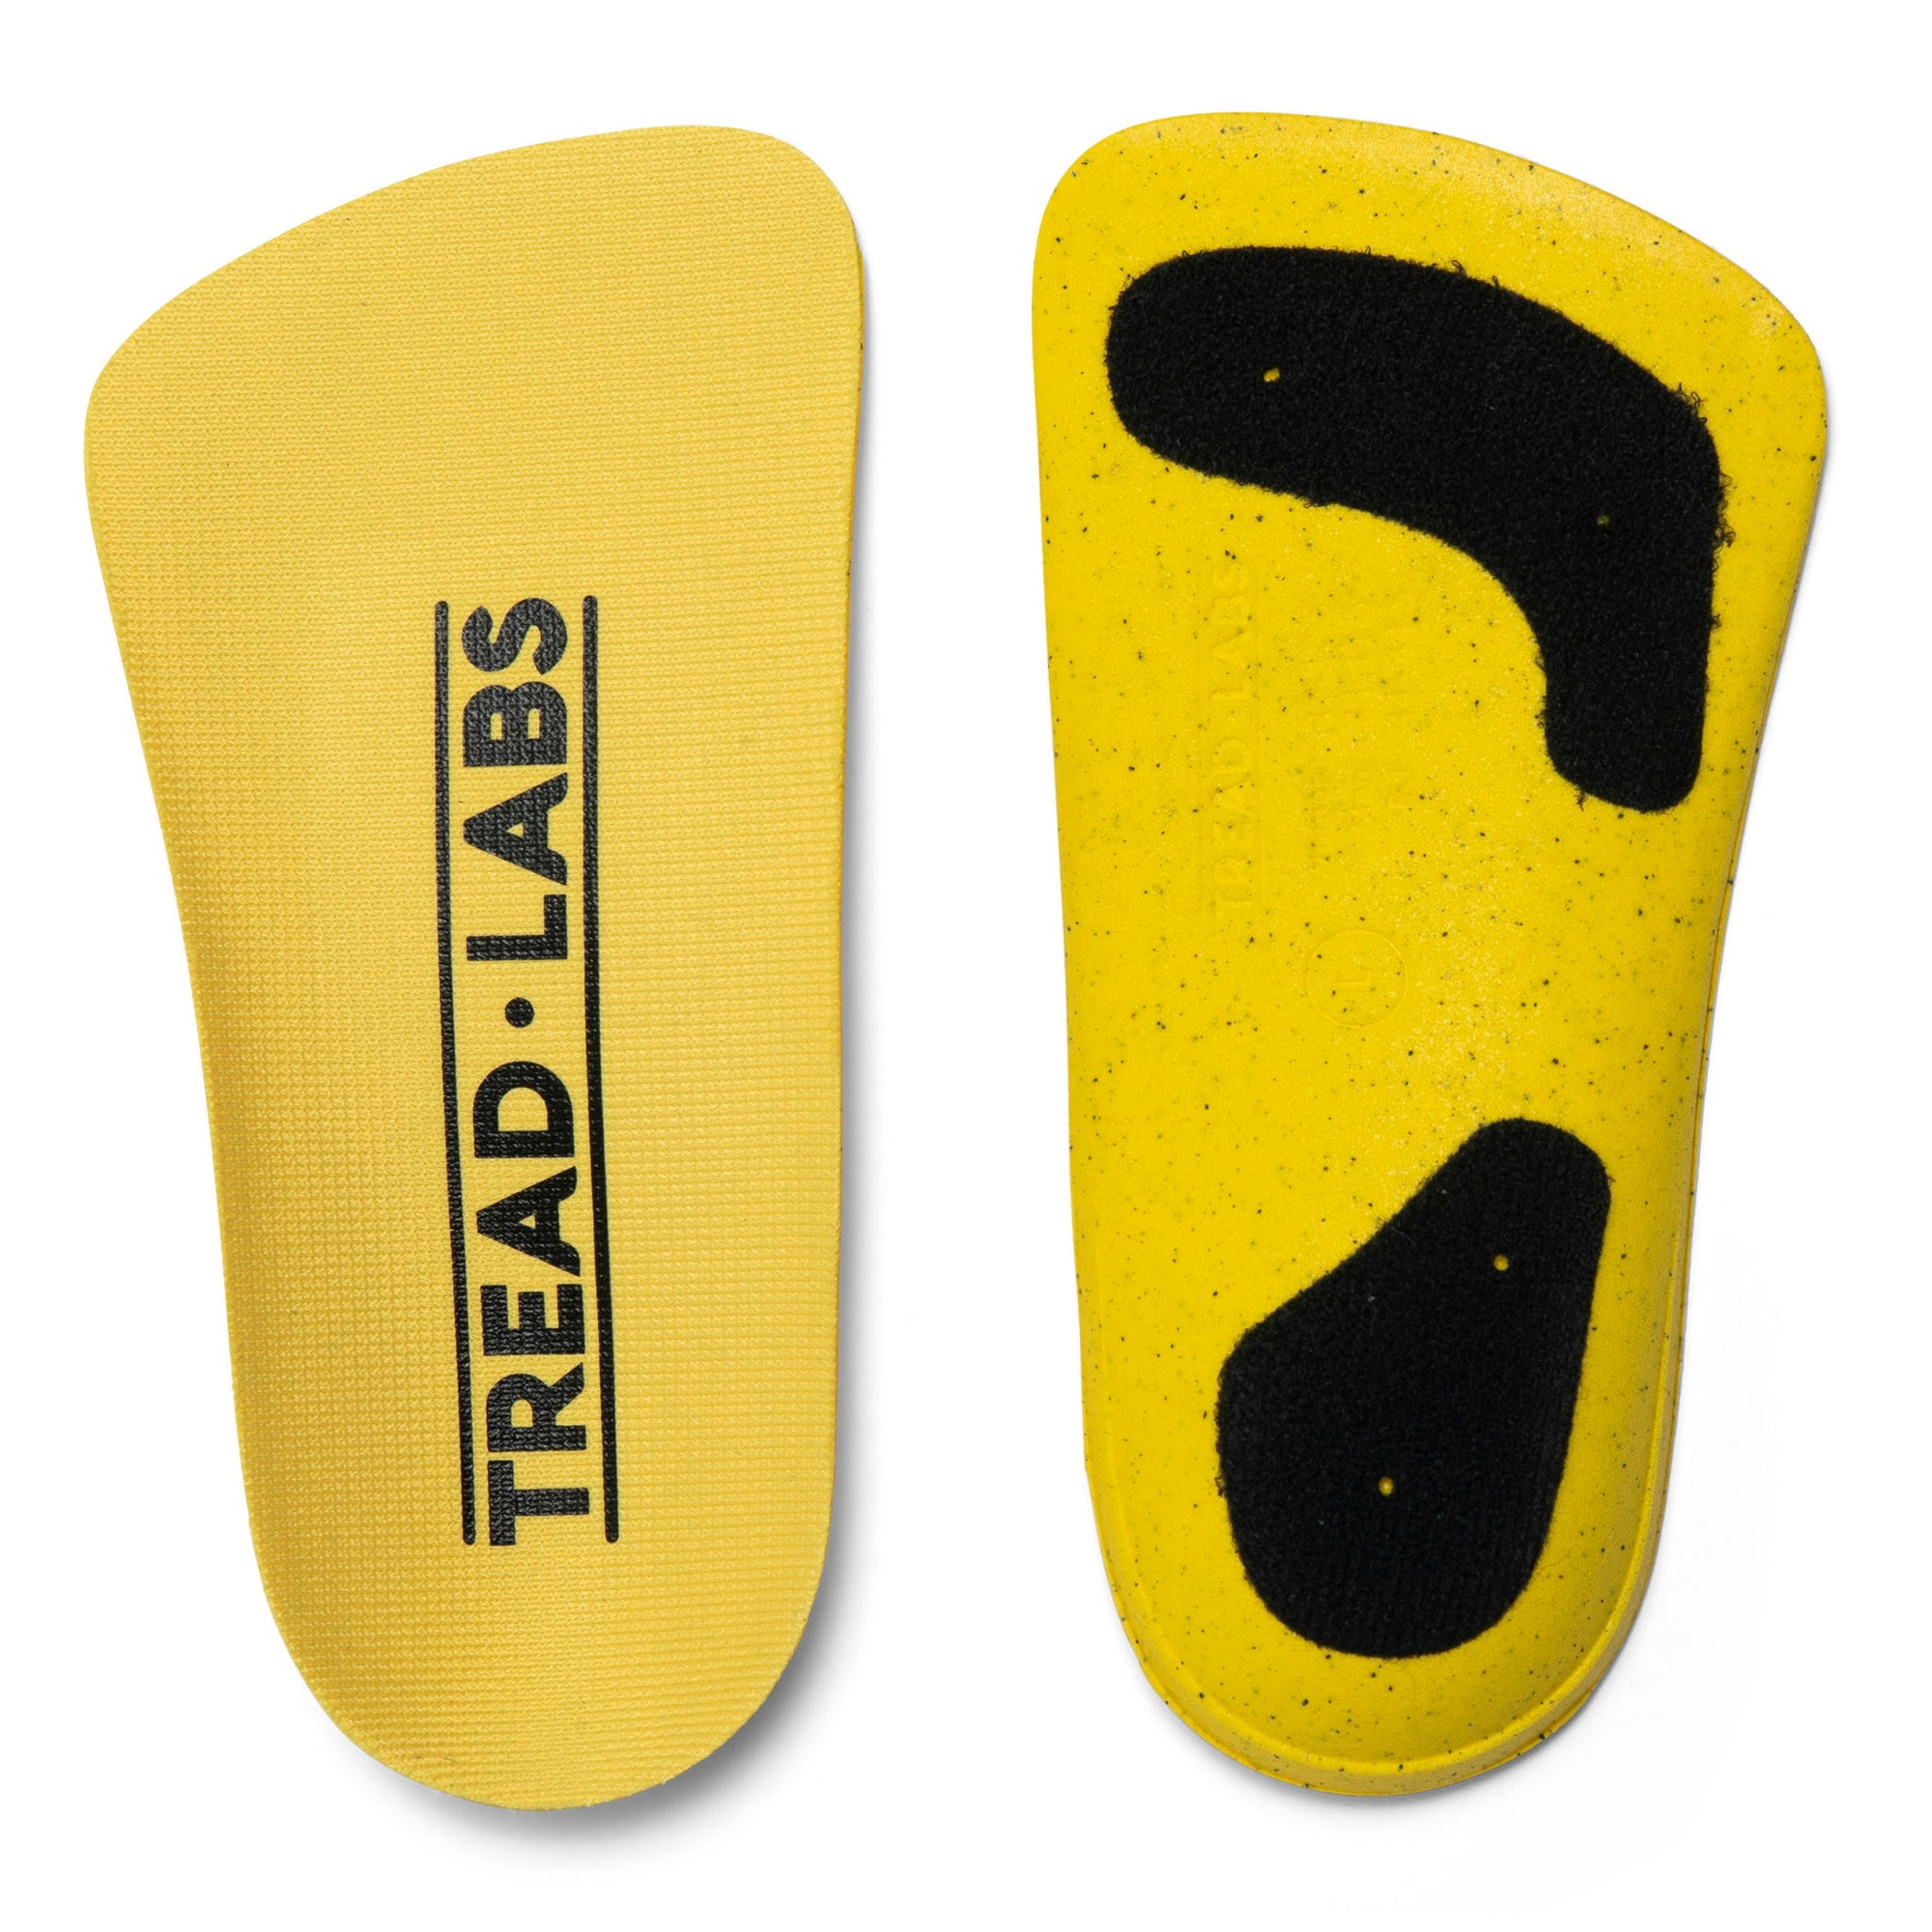 Insole Top Cover Replacements | Tread Labs Dash Insoles